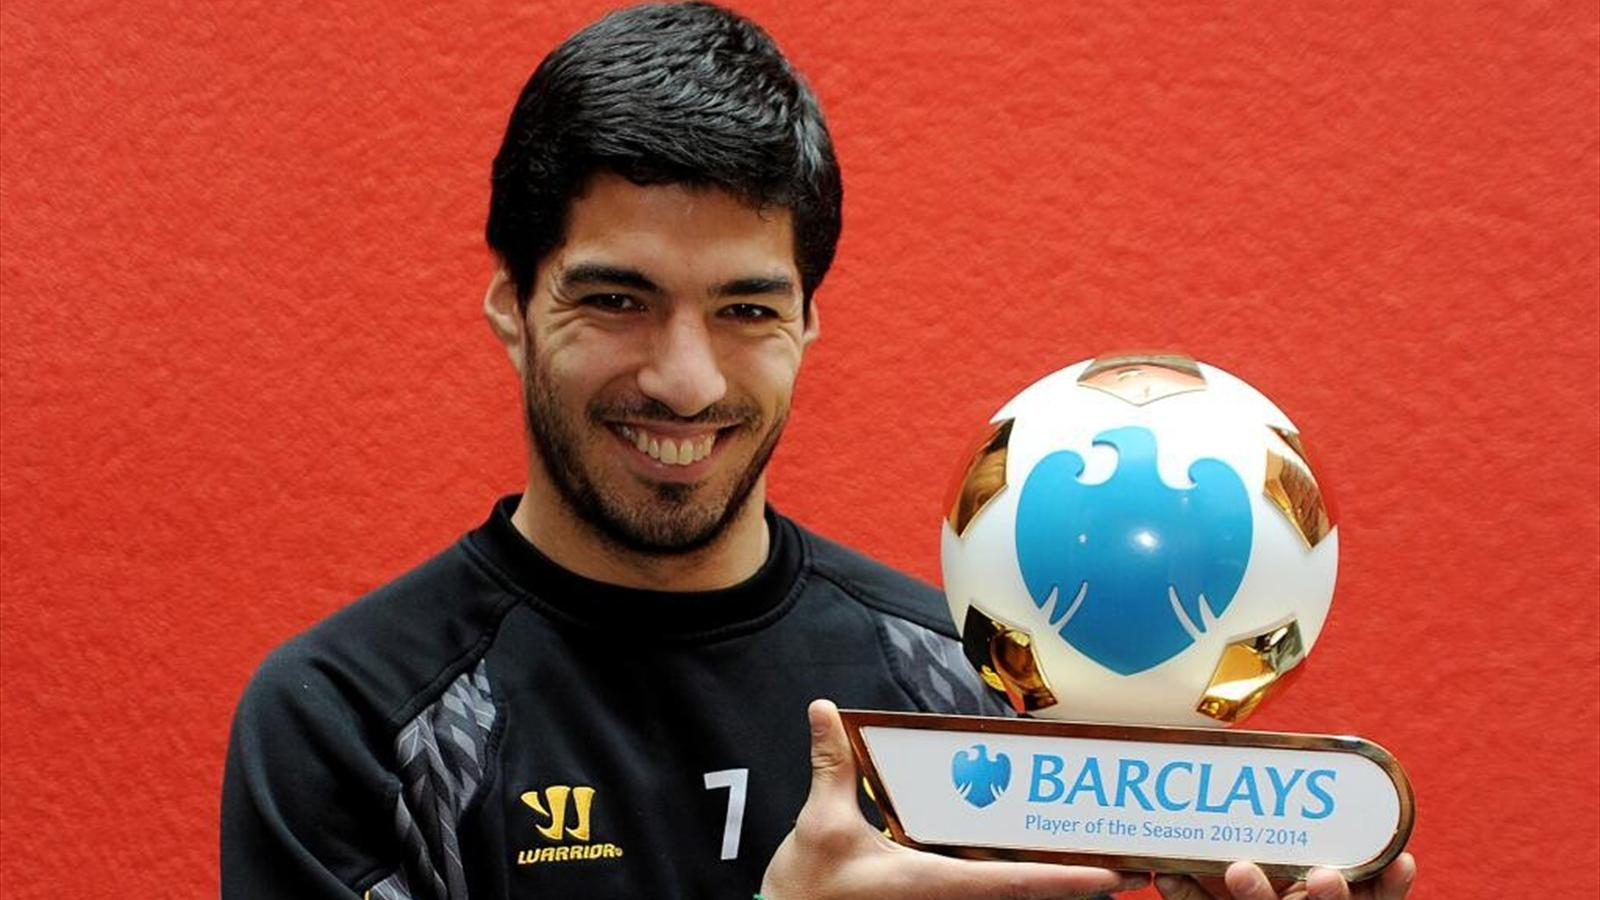 Luis Suarez is named as Barclays Player of the Season